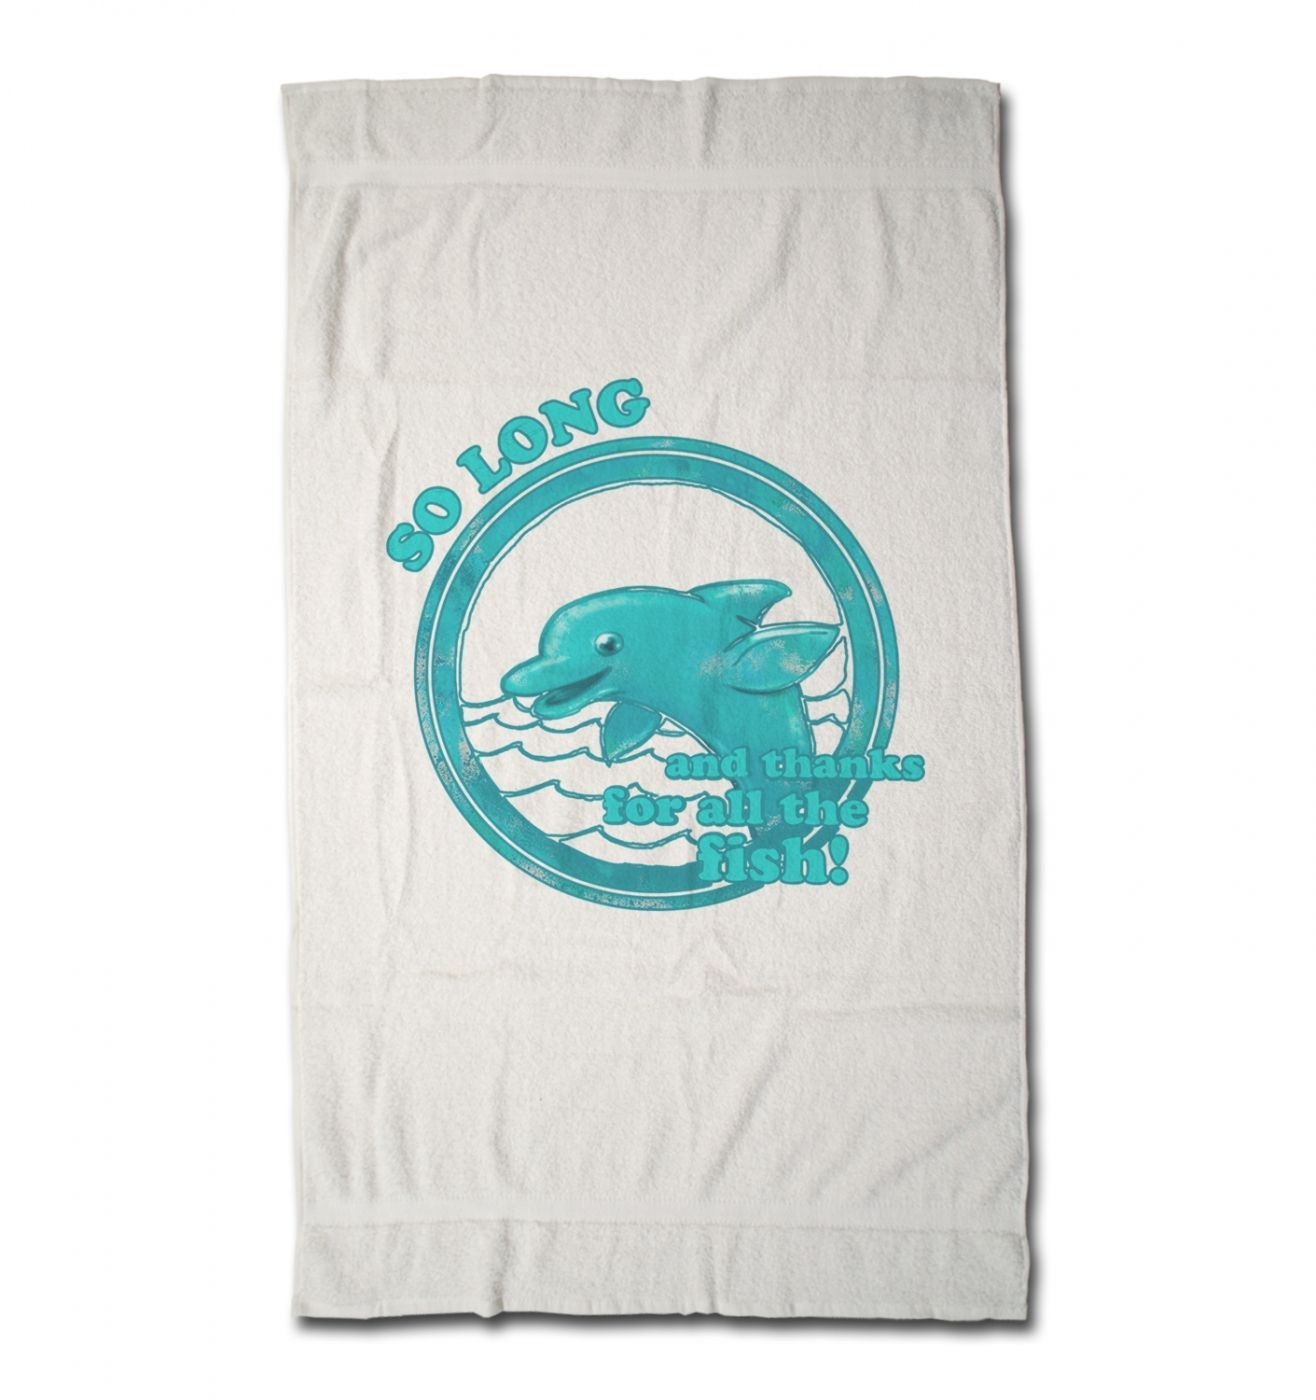 So Long And Thanks For All The Fish hand towel